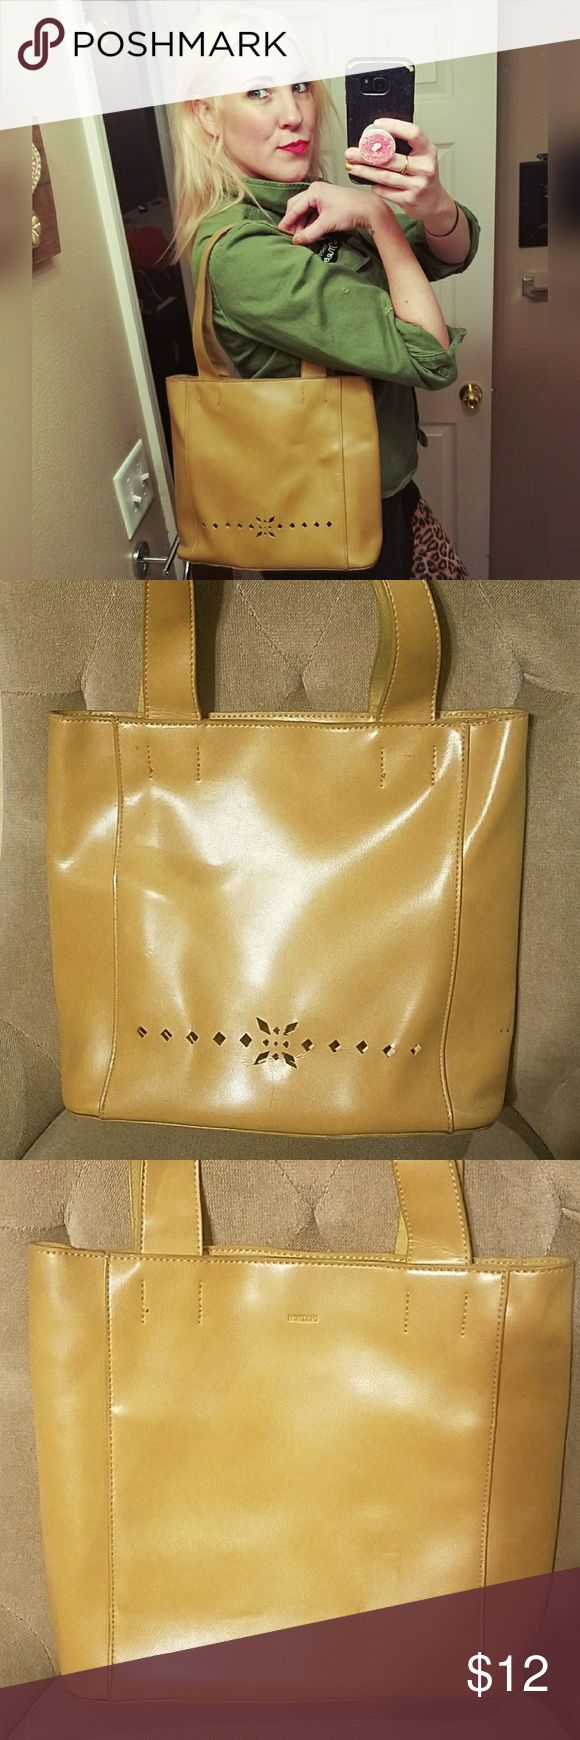 """Cute, MONDANI handbag!! No tags for material. Feels like faux leather. Zipper closure. Inside slide and zipper pocket. A few marks and scuffs. Haven't tried to clean.  13"""" wide. 10.5"""" tall. 10"""" handle drop. Mondani Bags"""